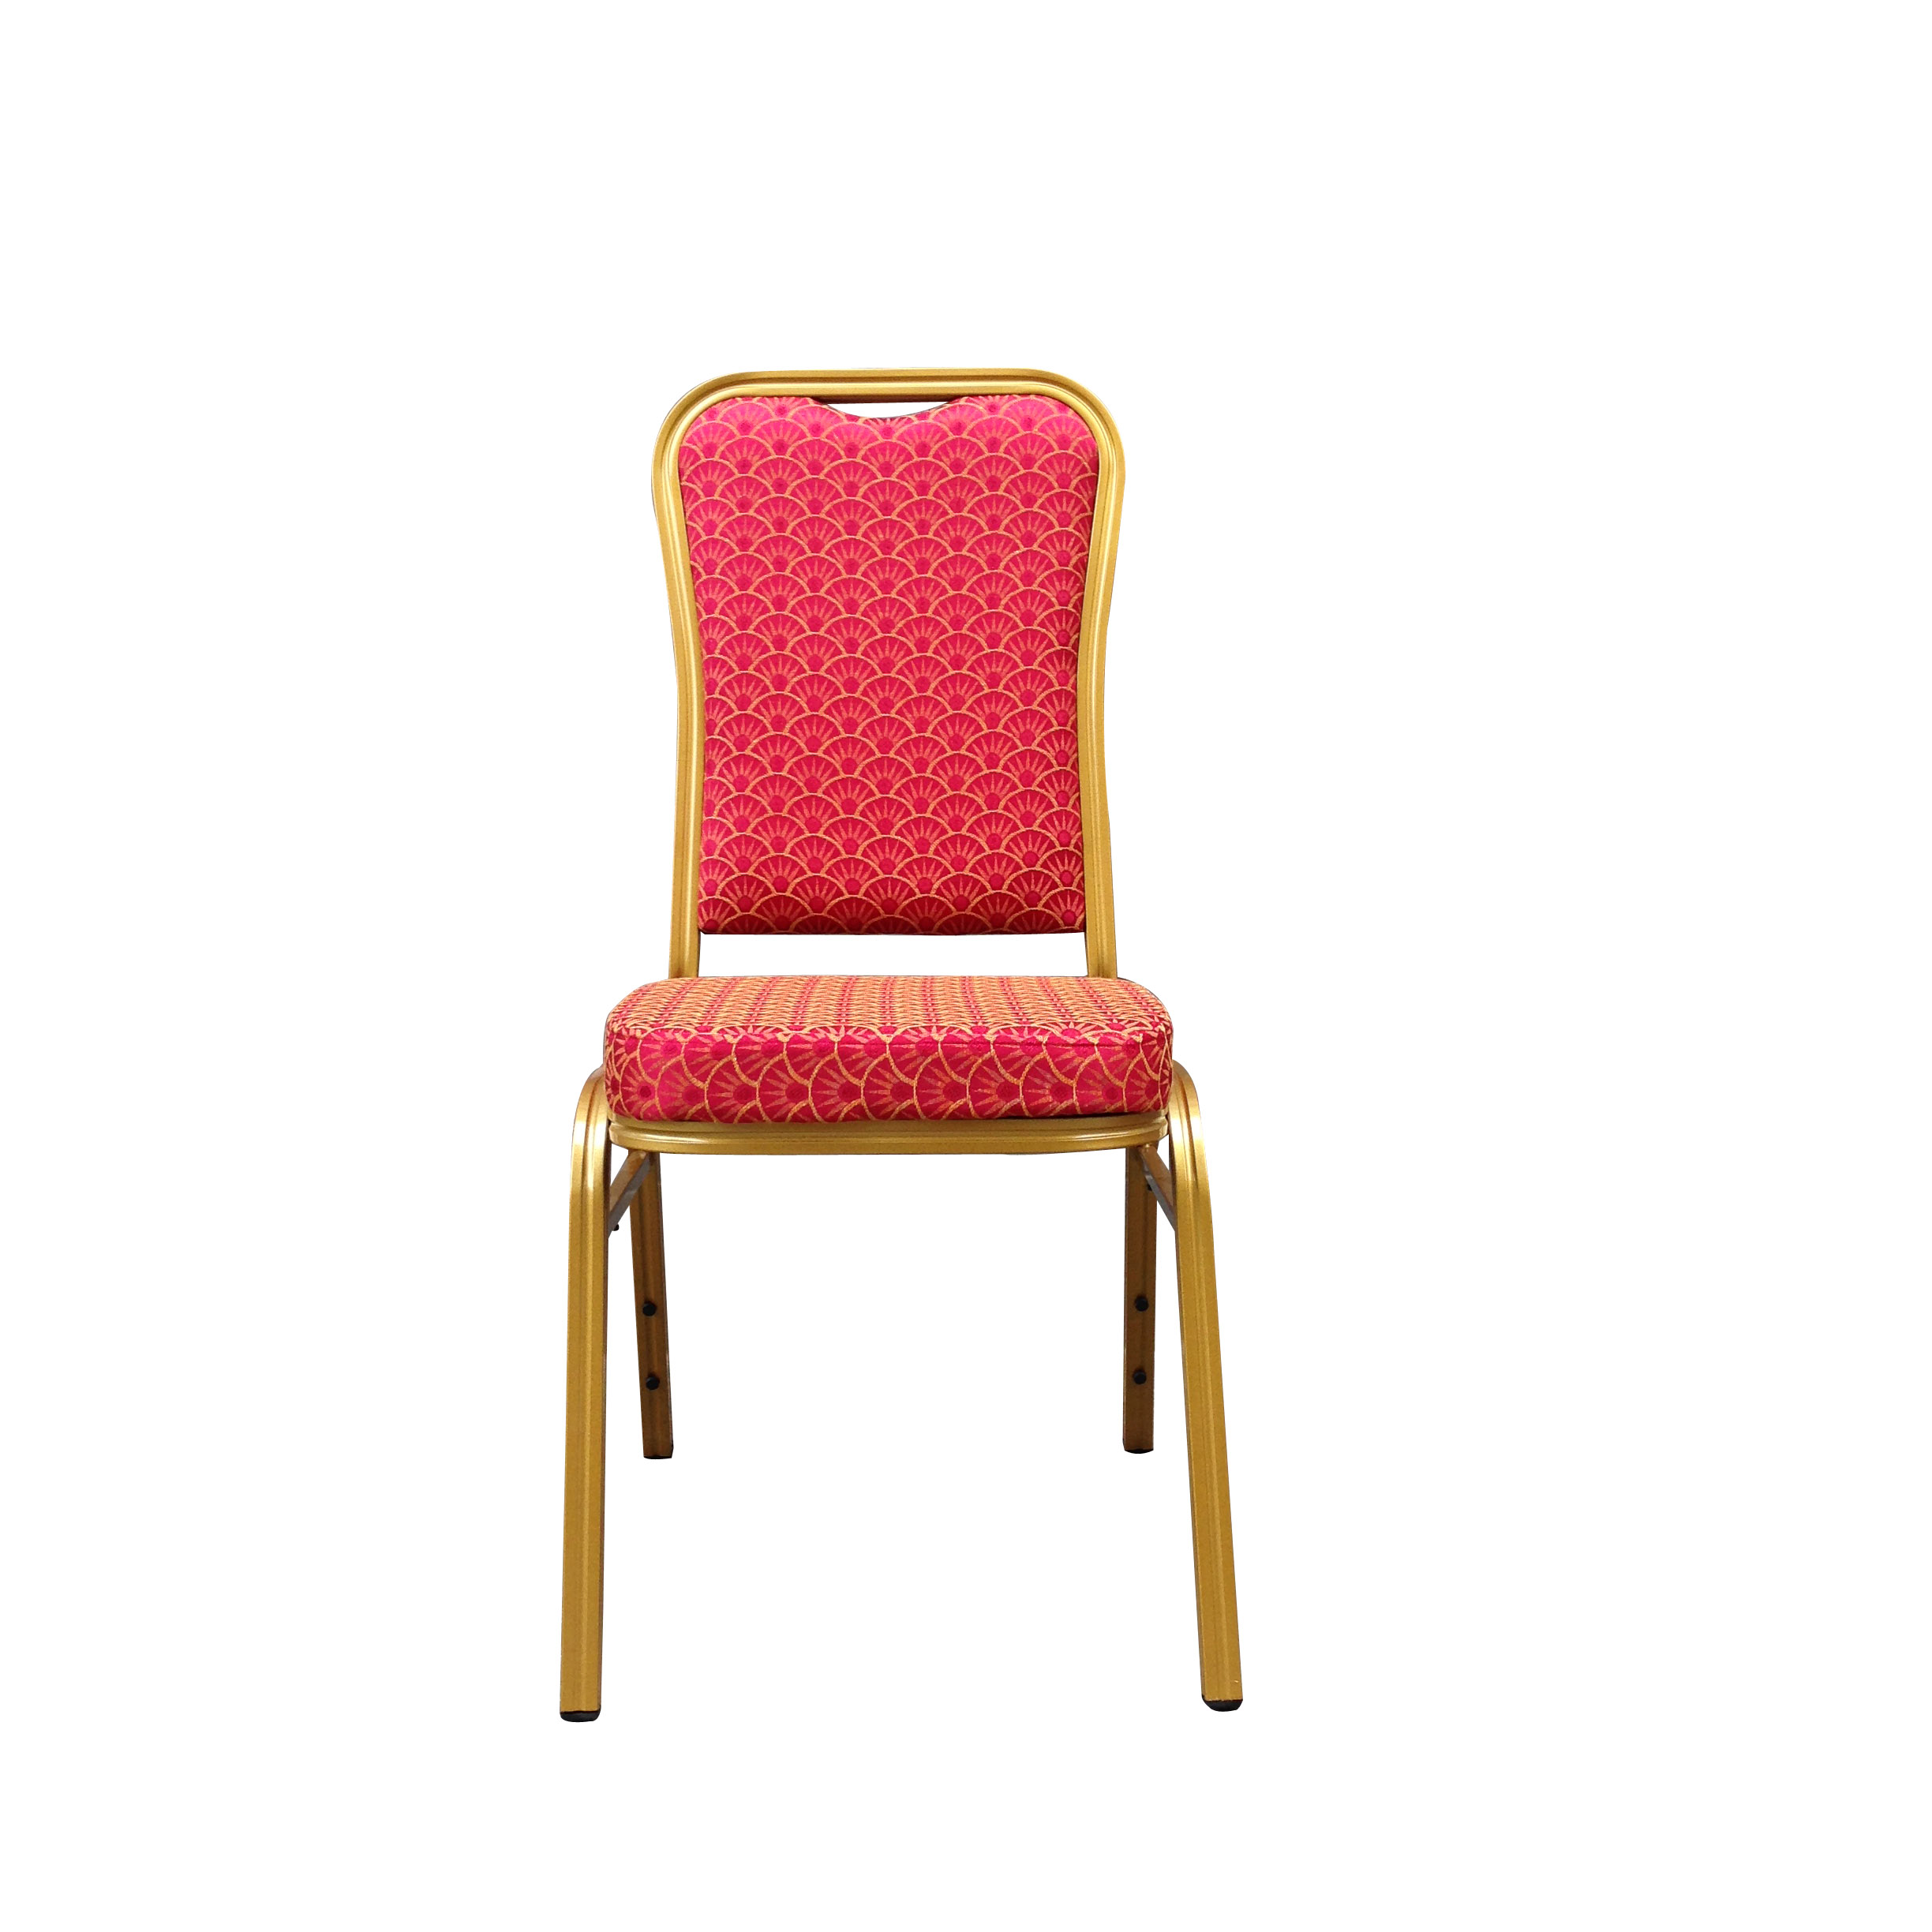 Used Banquet Chairs Wholesale SF-L02 Featured Image